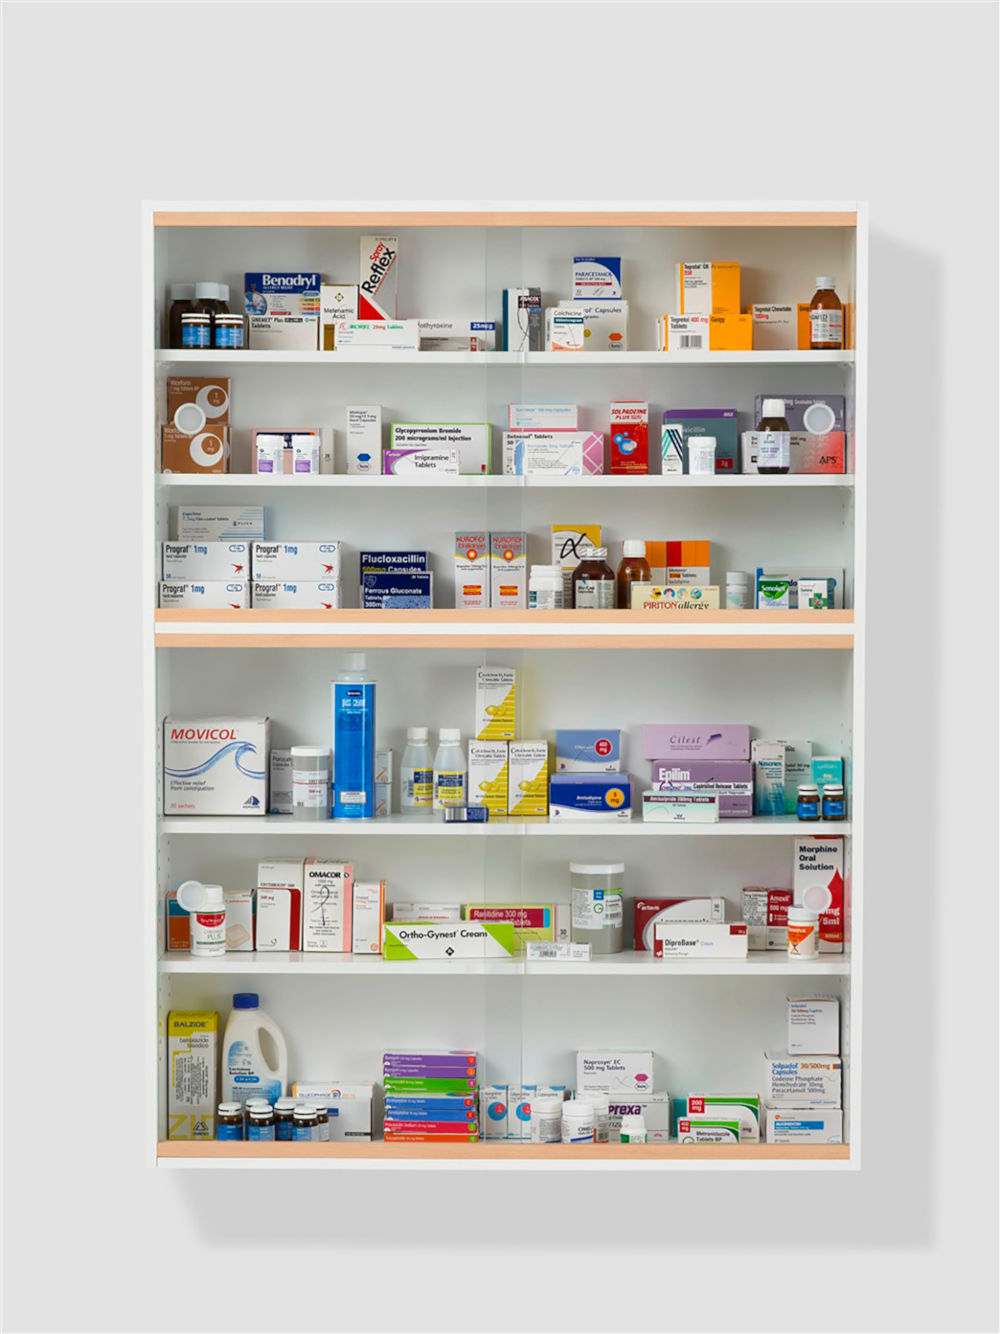 Damien Hirst, Satellite, 1989-2010. Glass, faced particleboard, ramin, plastic, aluminium and pharmaceutical packaging 137 × 102 × 23 cm 54 × 40 × 9 in. Photographed by Prudence Cuming Associates © Damien Hirst and Science Ltd. All rights reserved, DACS 2019